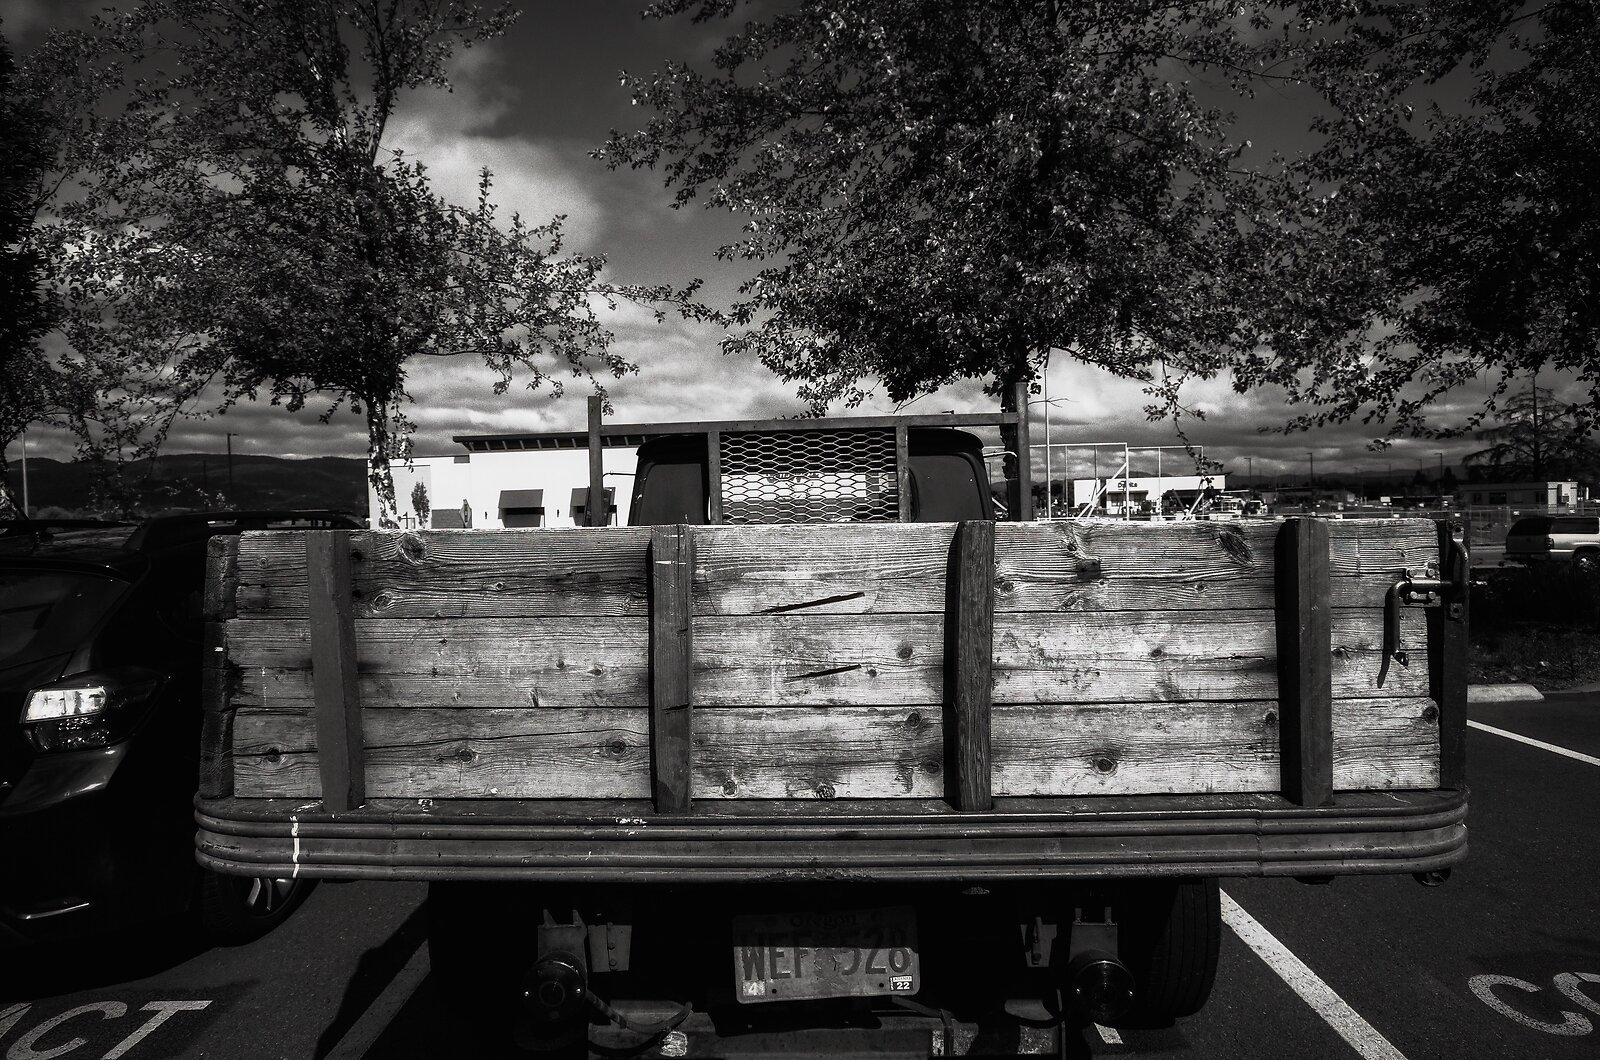 GRII_May22_rear_of_flatbed_truck.jpg